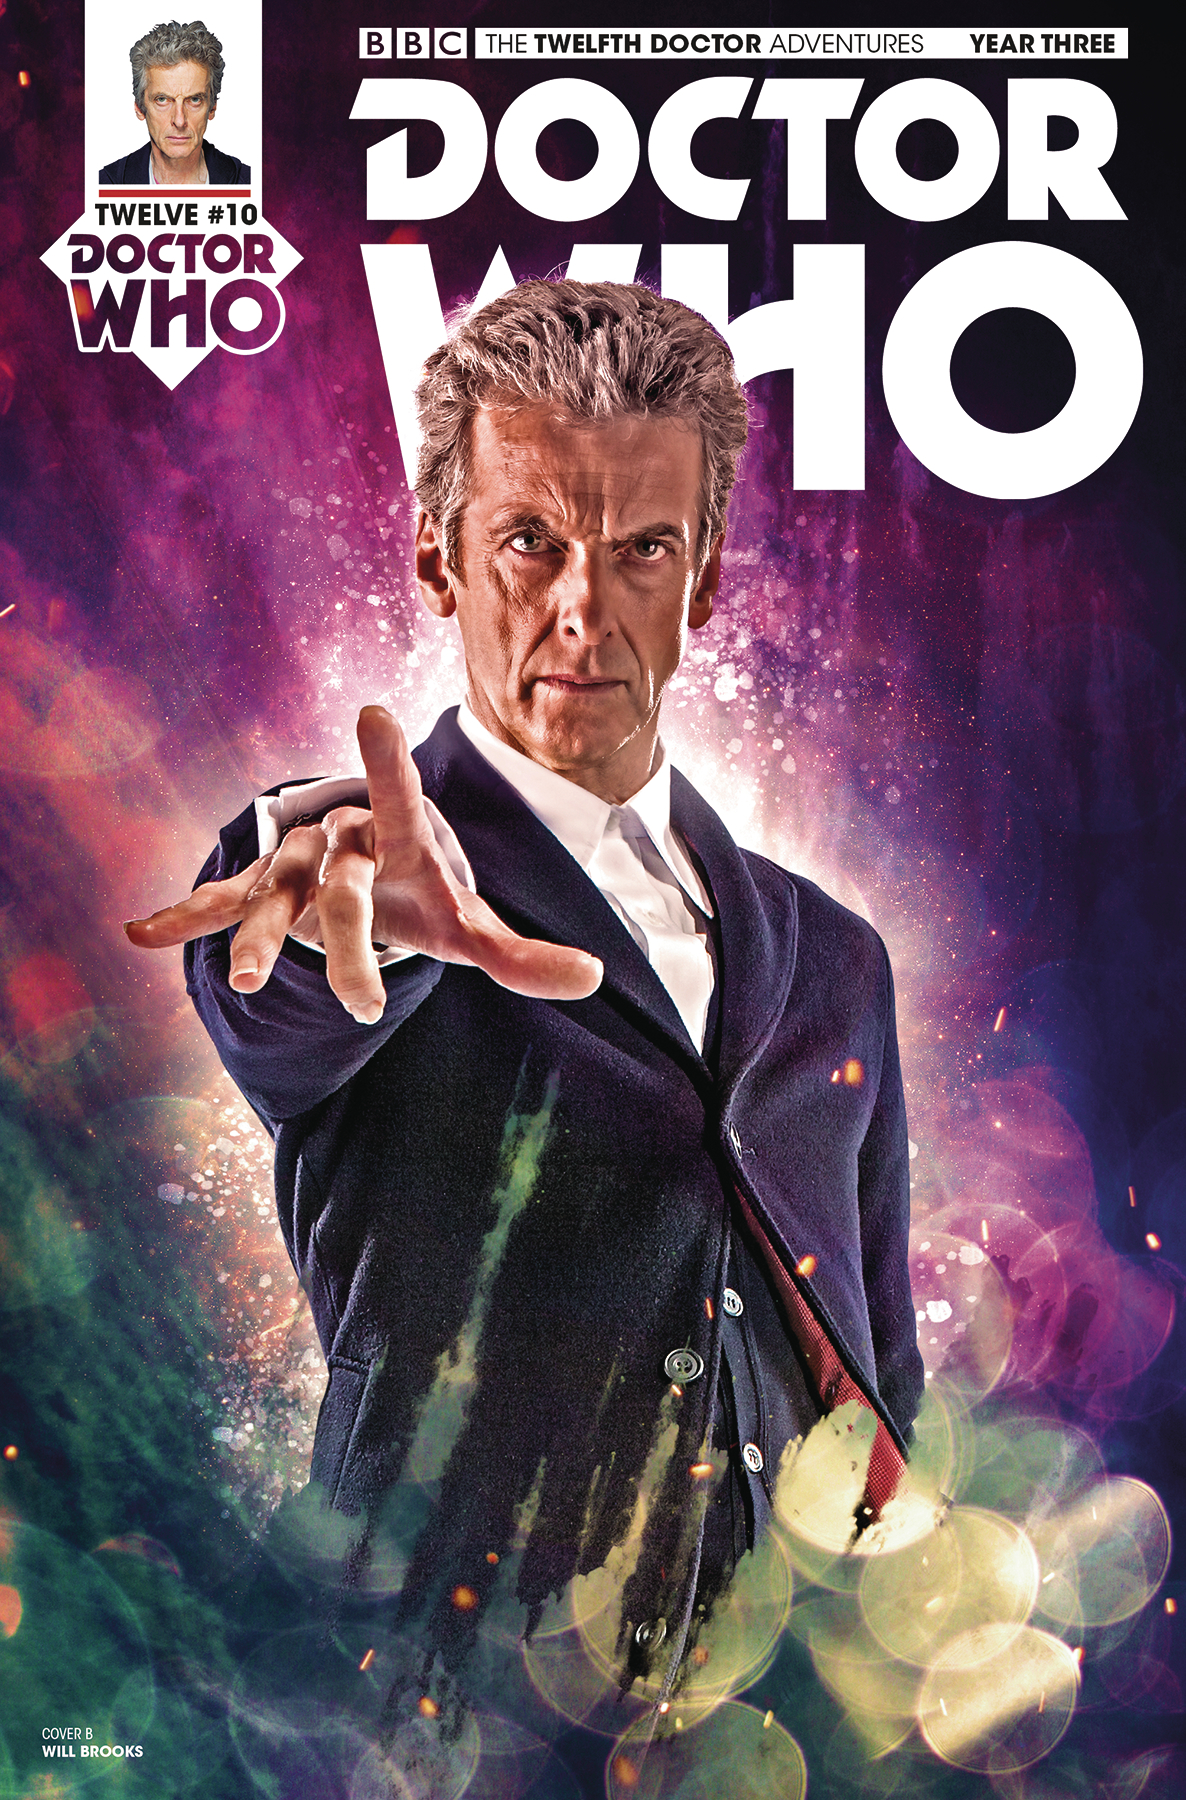 DOCTOR WHO 12TH YEAR THREE #11 CVR B PHOTO